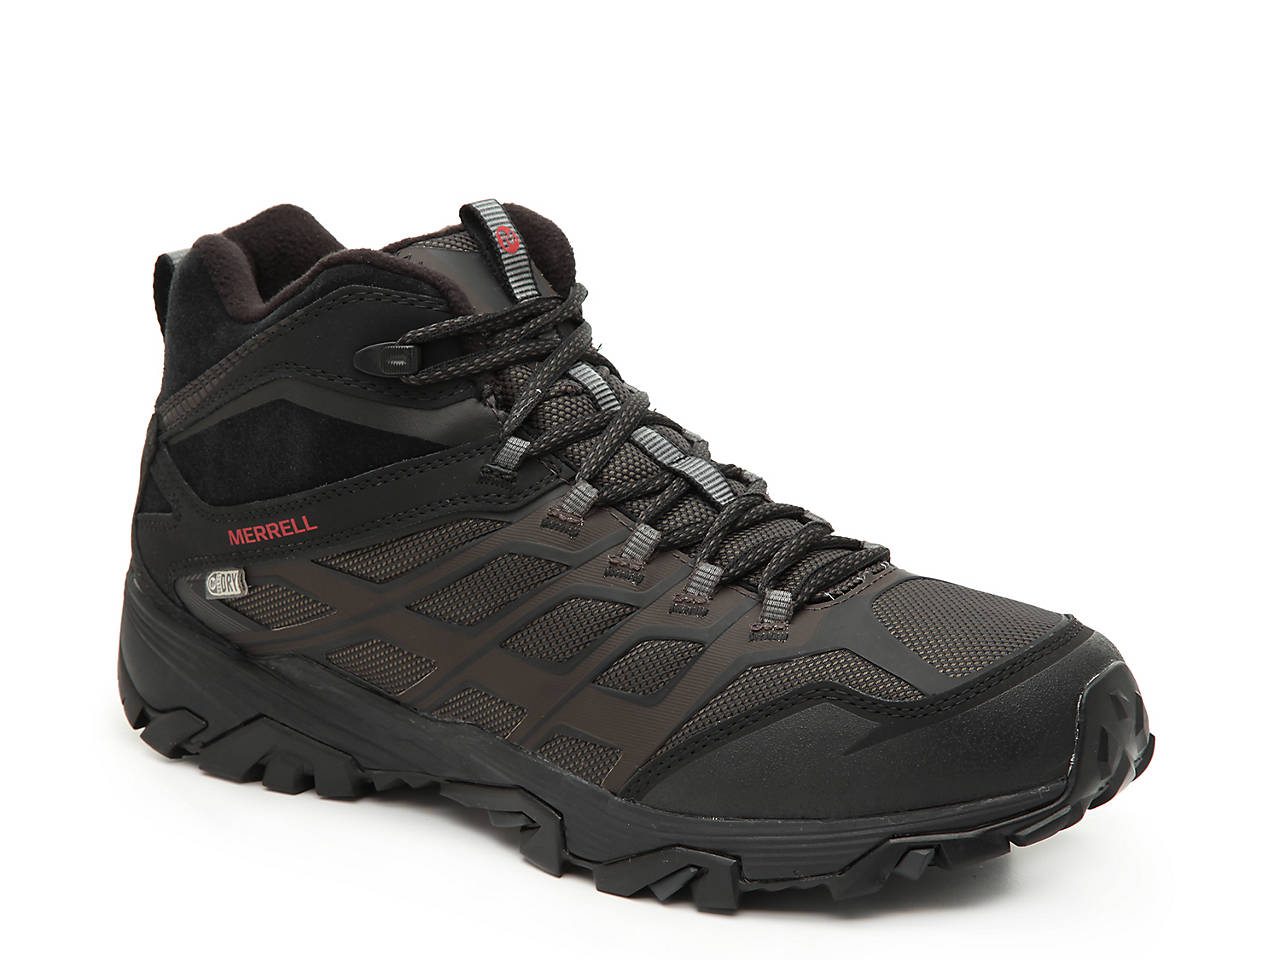 8670f7a4ea3 Moab FST Ice+ Thermo Hiking Boot